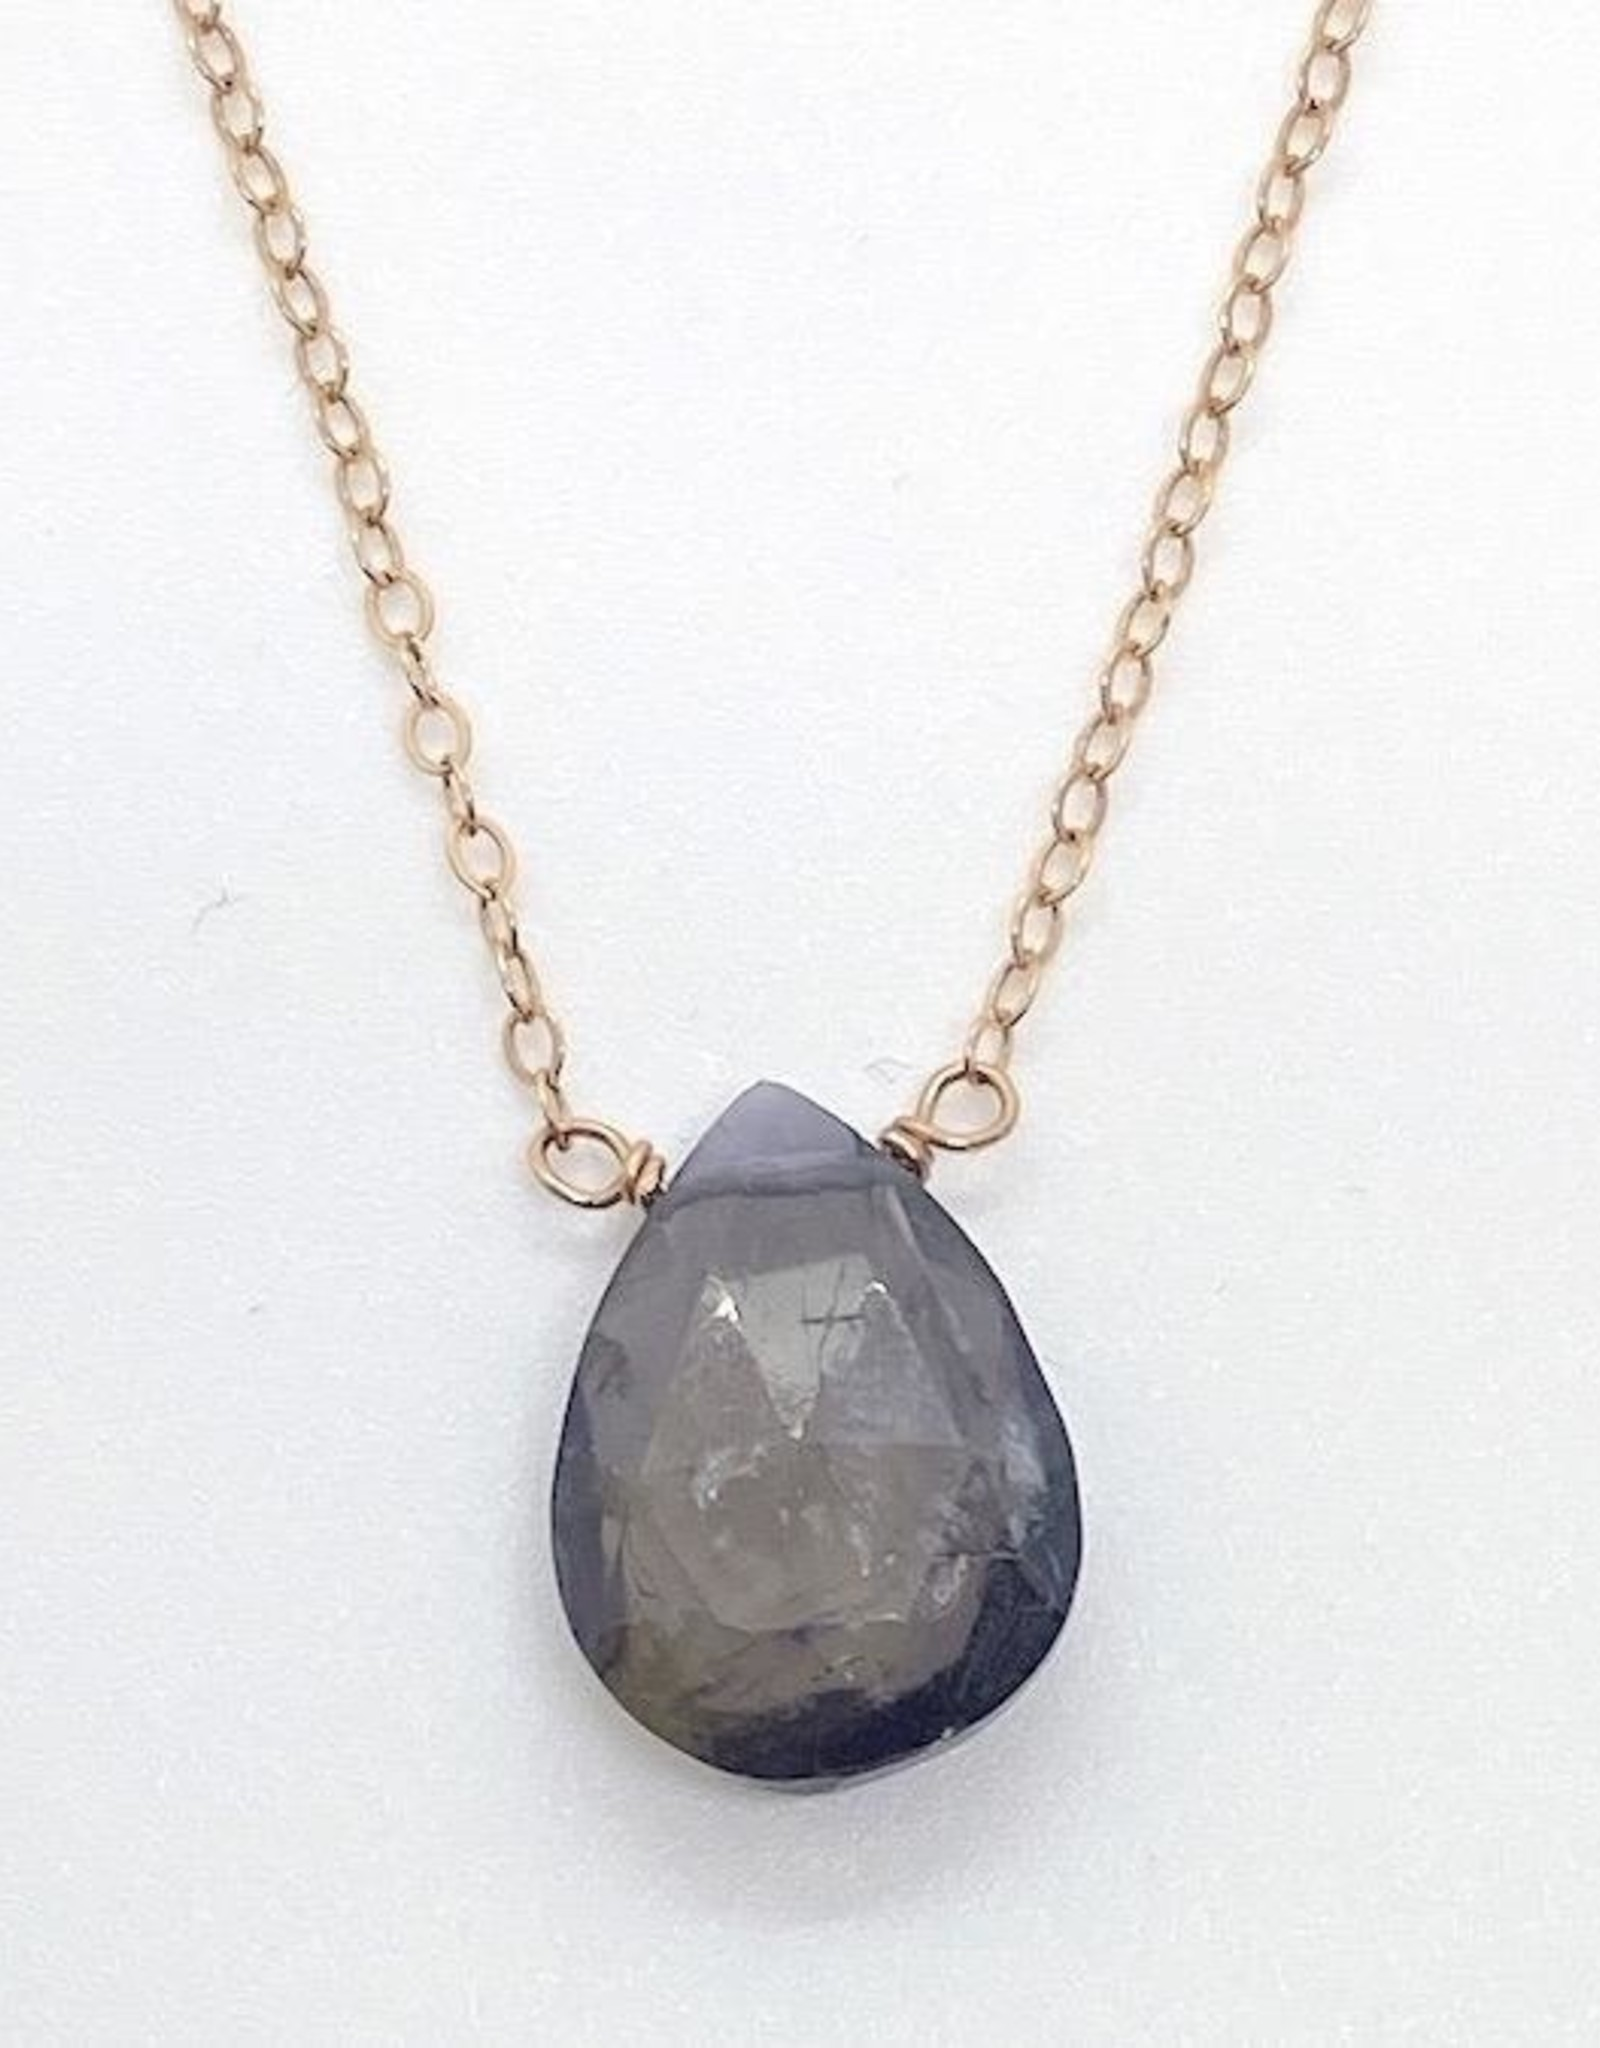 Handmade Rose Gold Filled Necklace with Iolite Drop